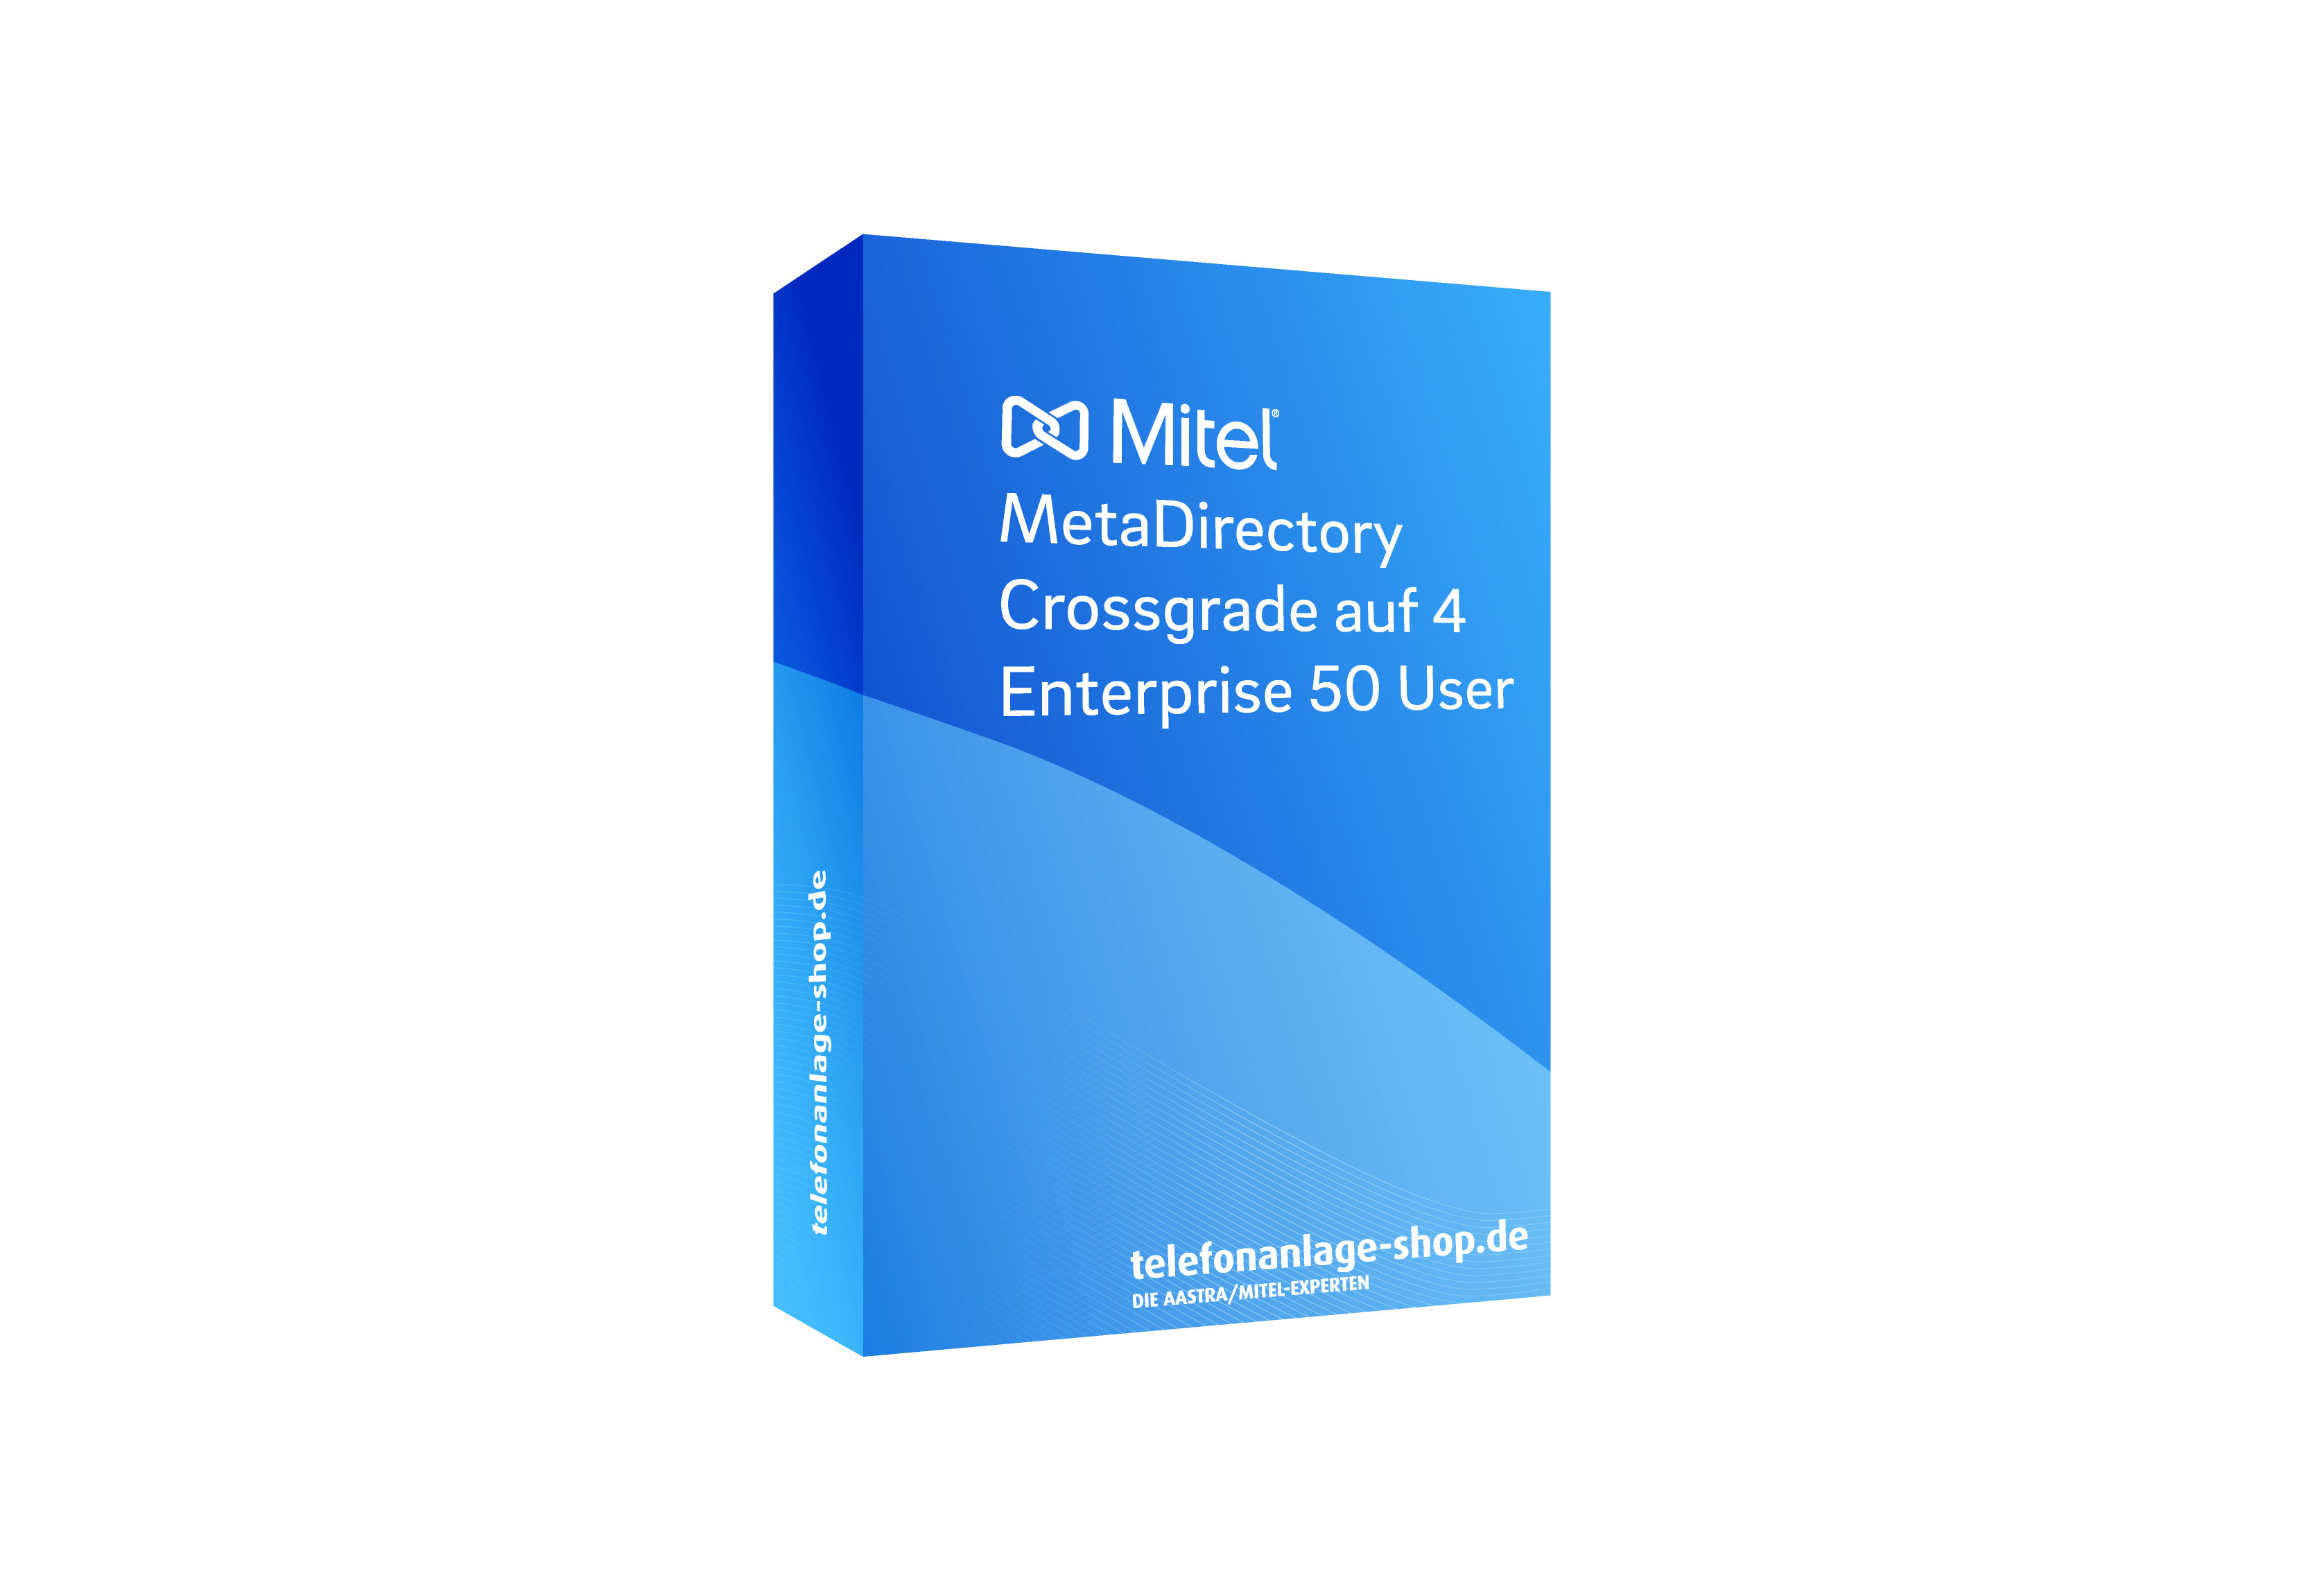 Produktbild - Mitel MetaDirectory Crossgrade auf 4 Enterprise 50 User